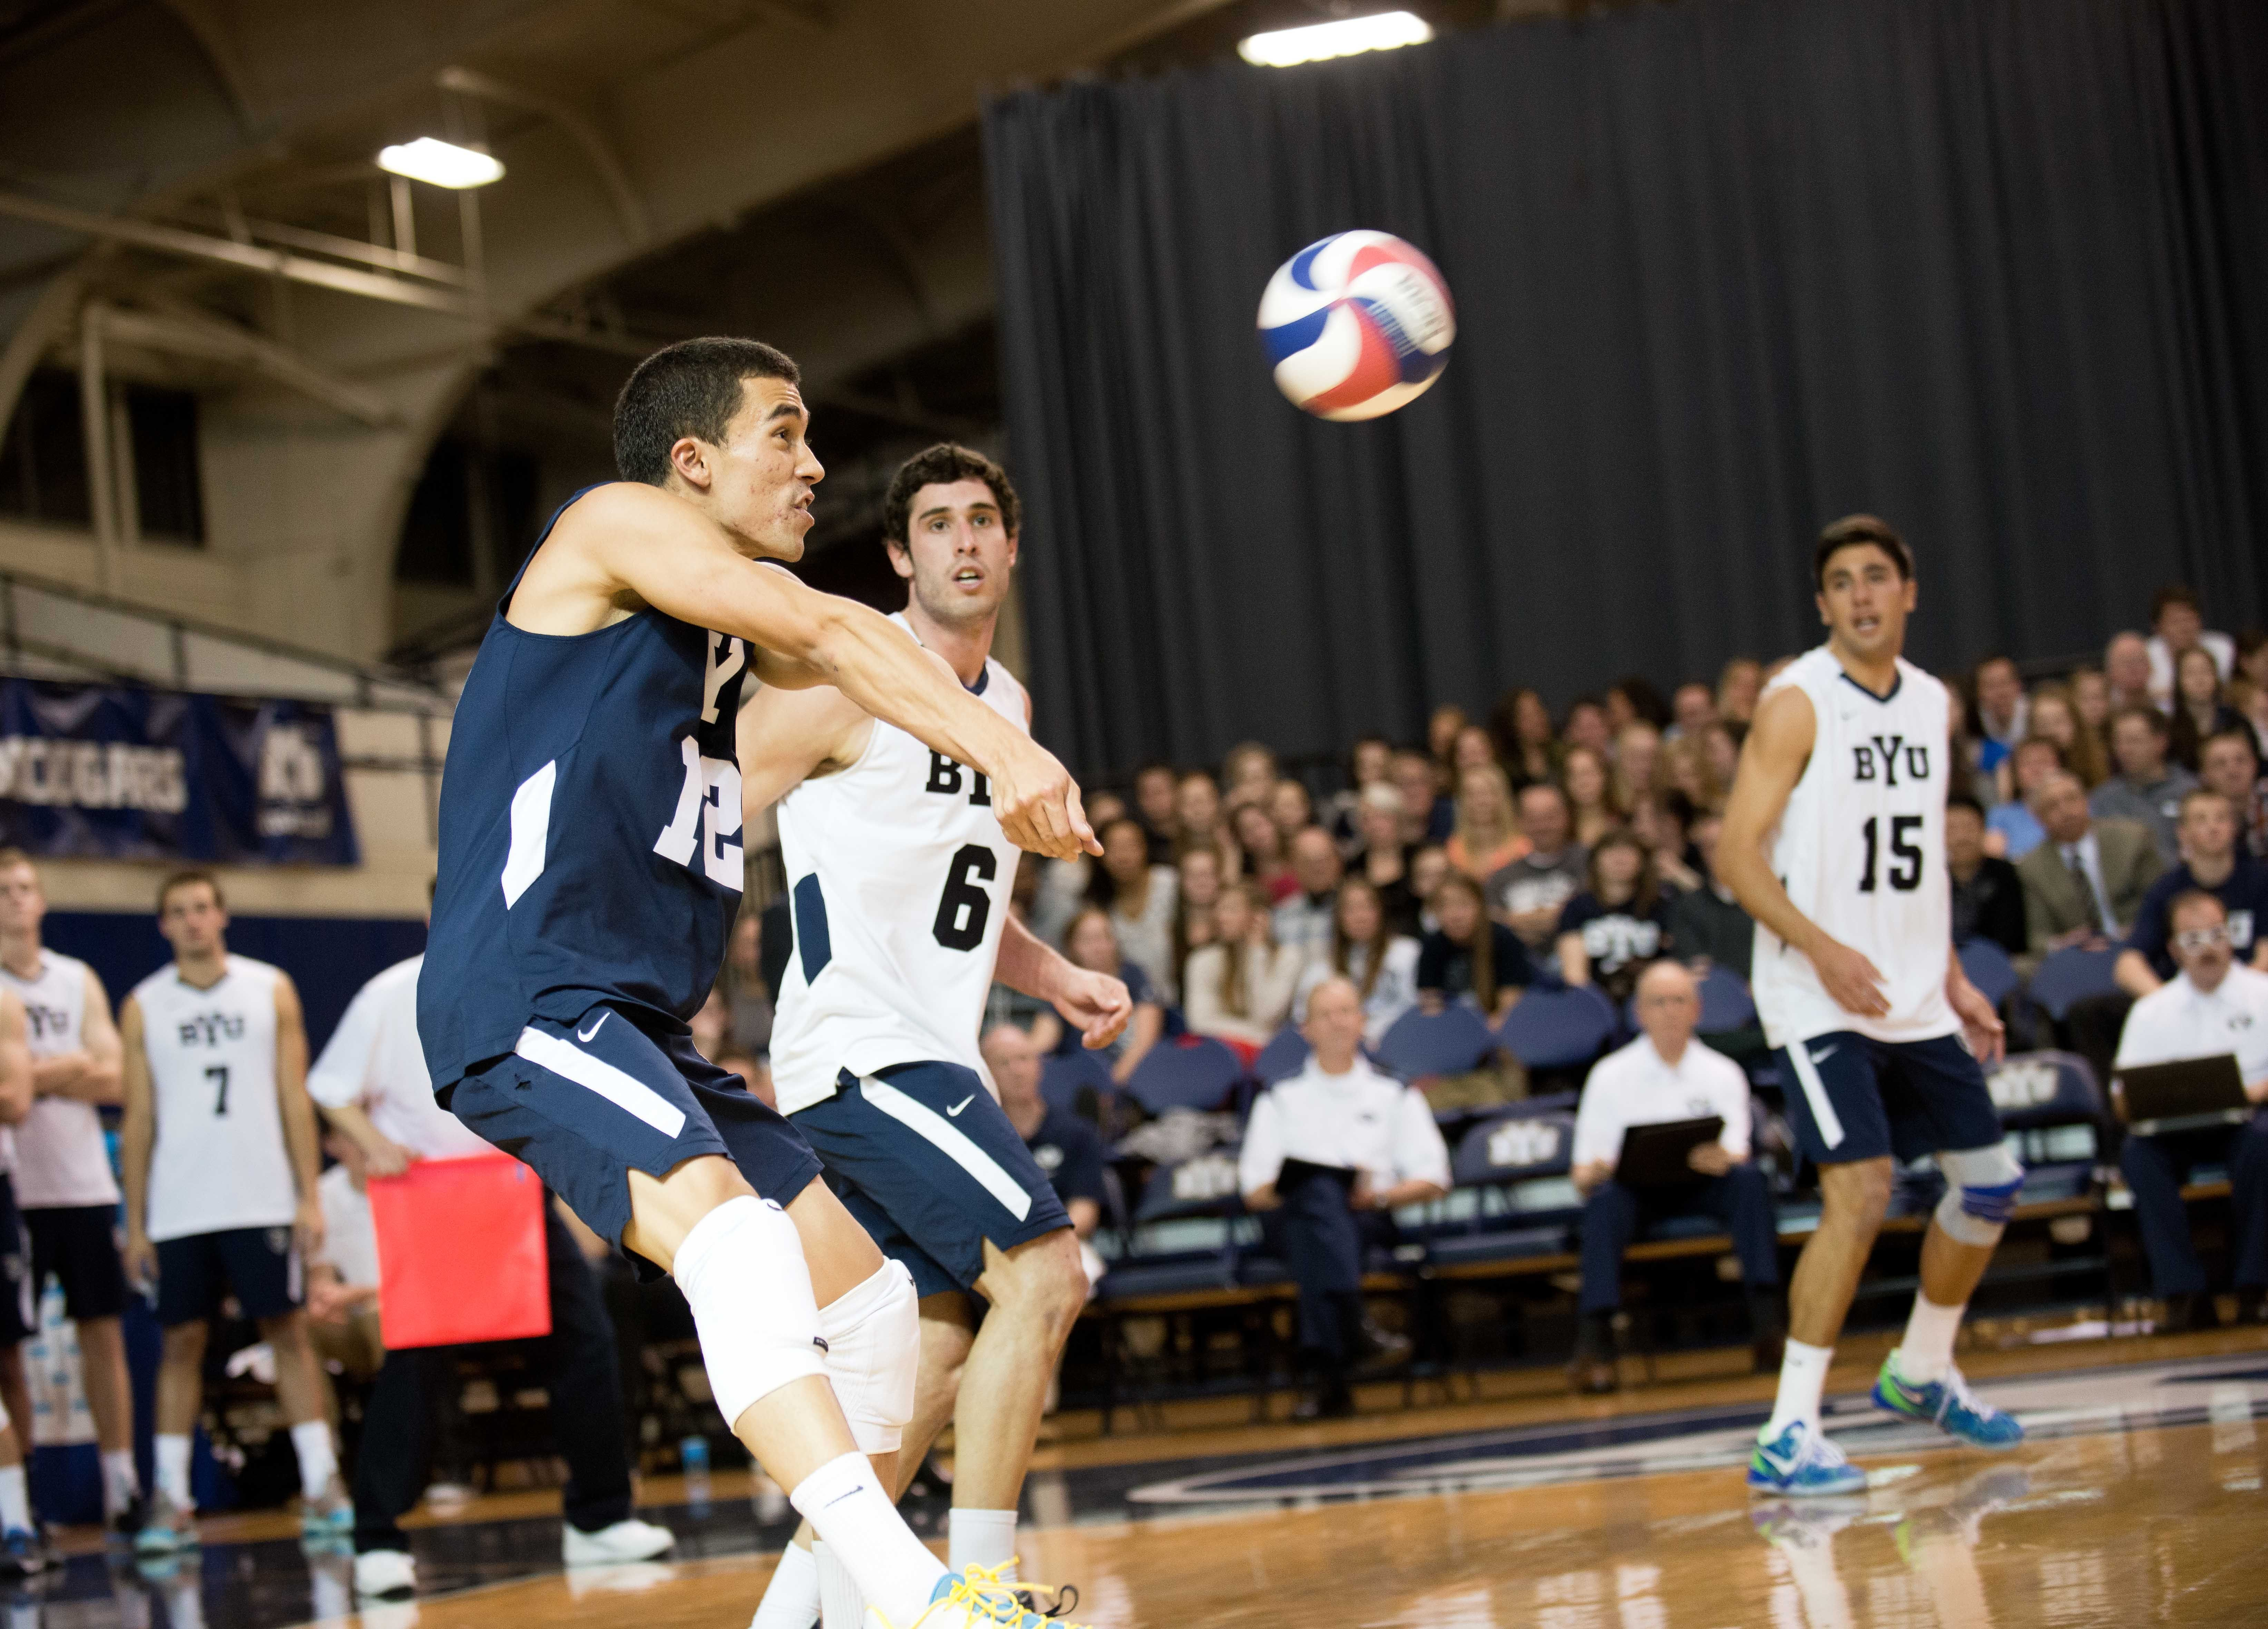 Men S Volleyball Won T Settle For Sixth Place In 2015 Byu Sports Volleyball Men